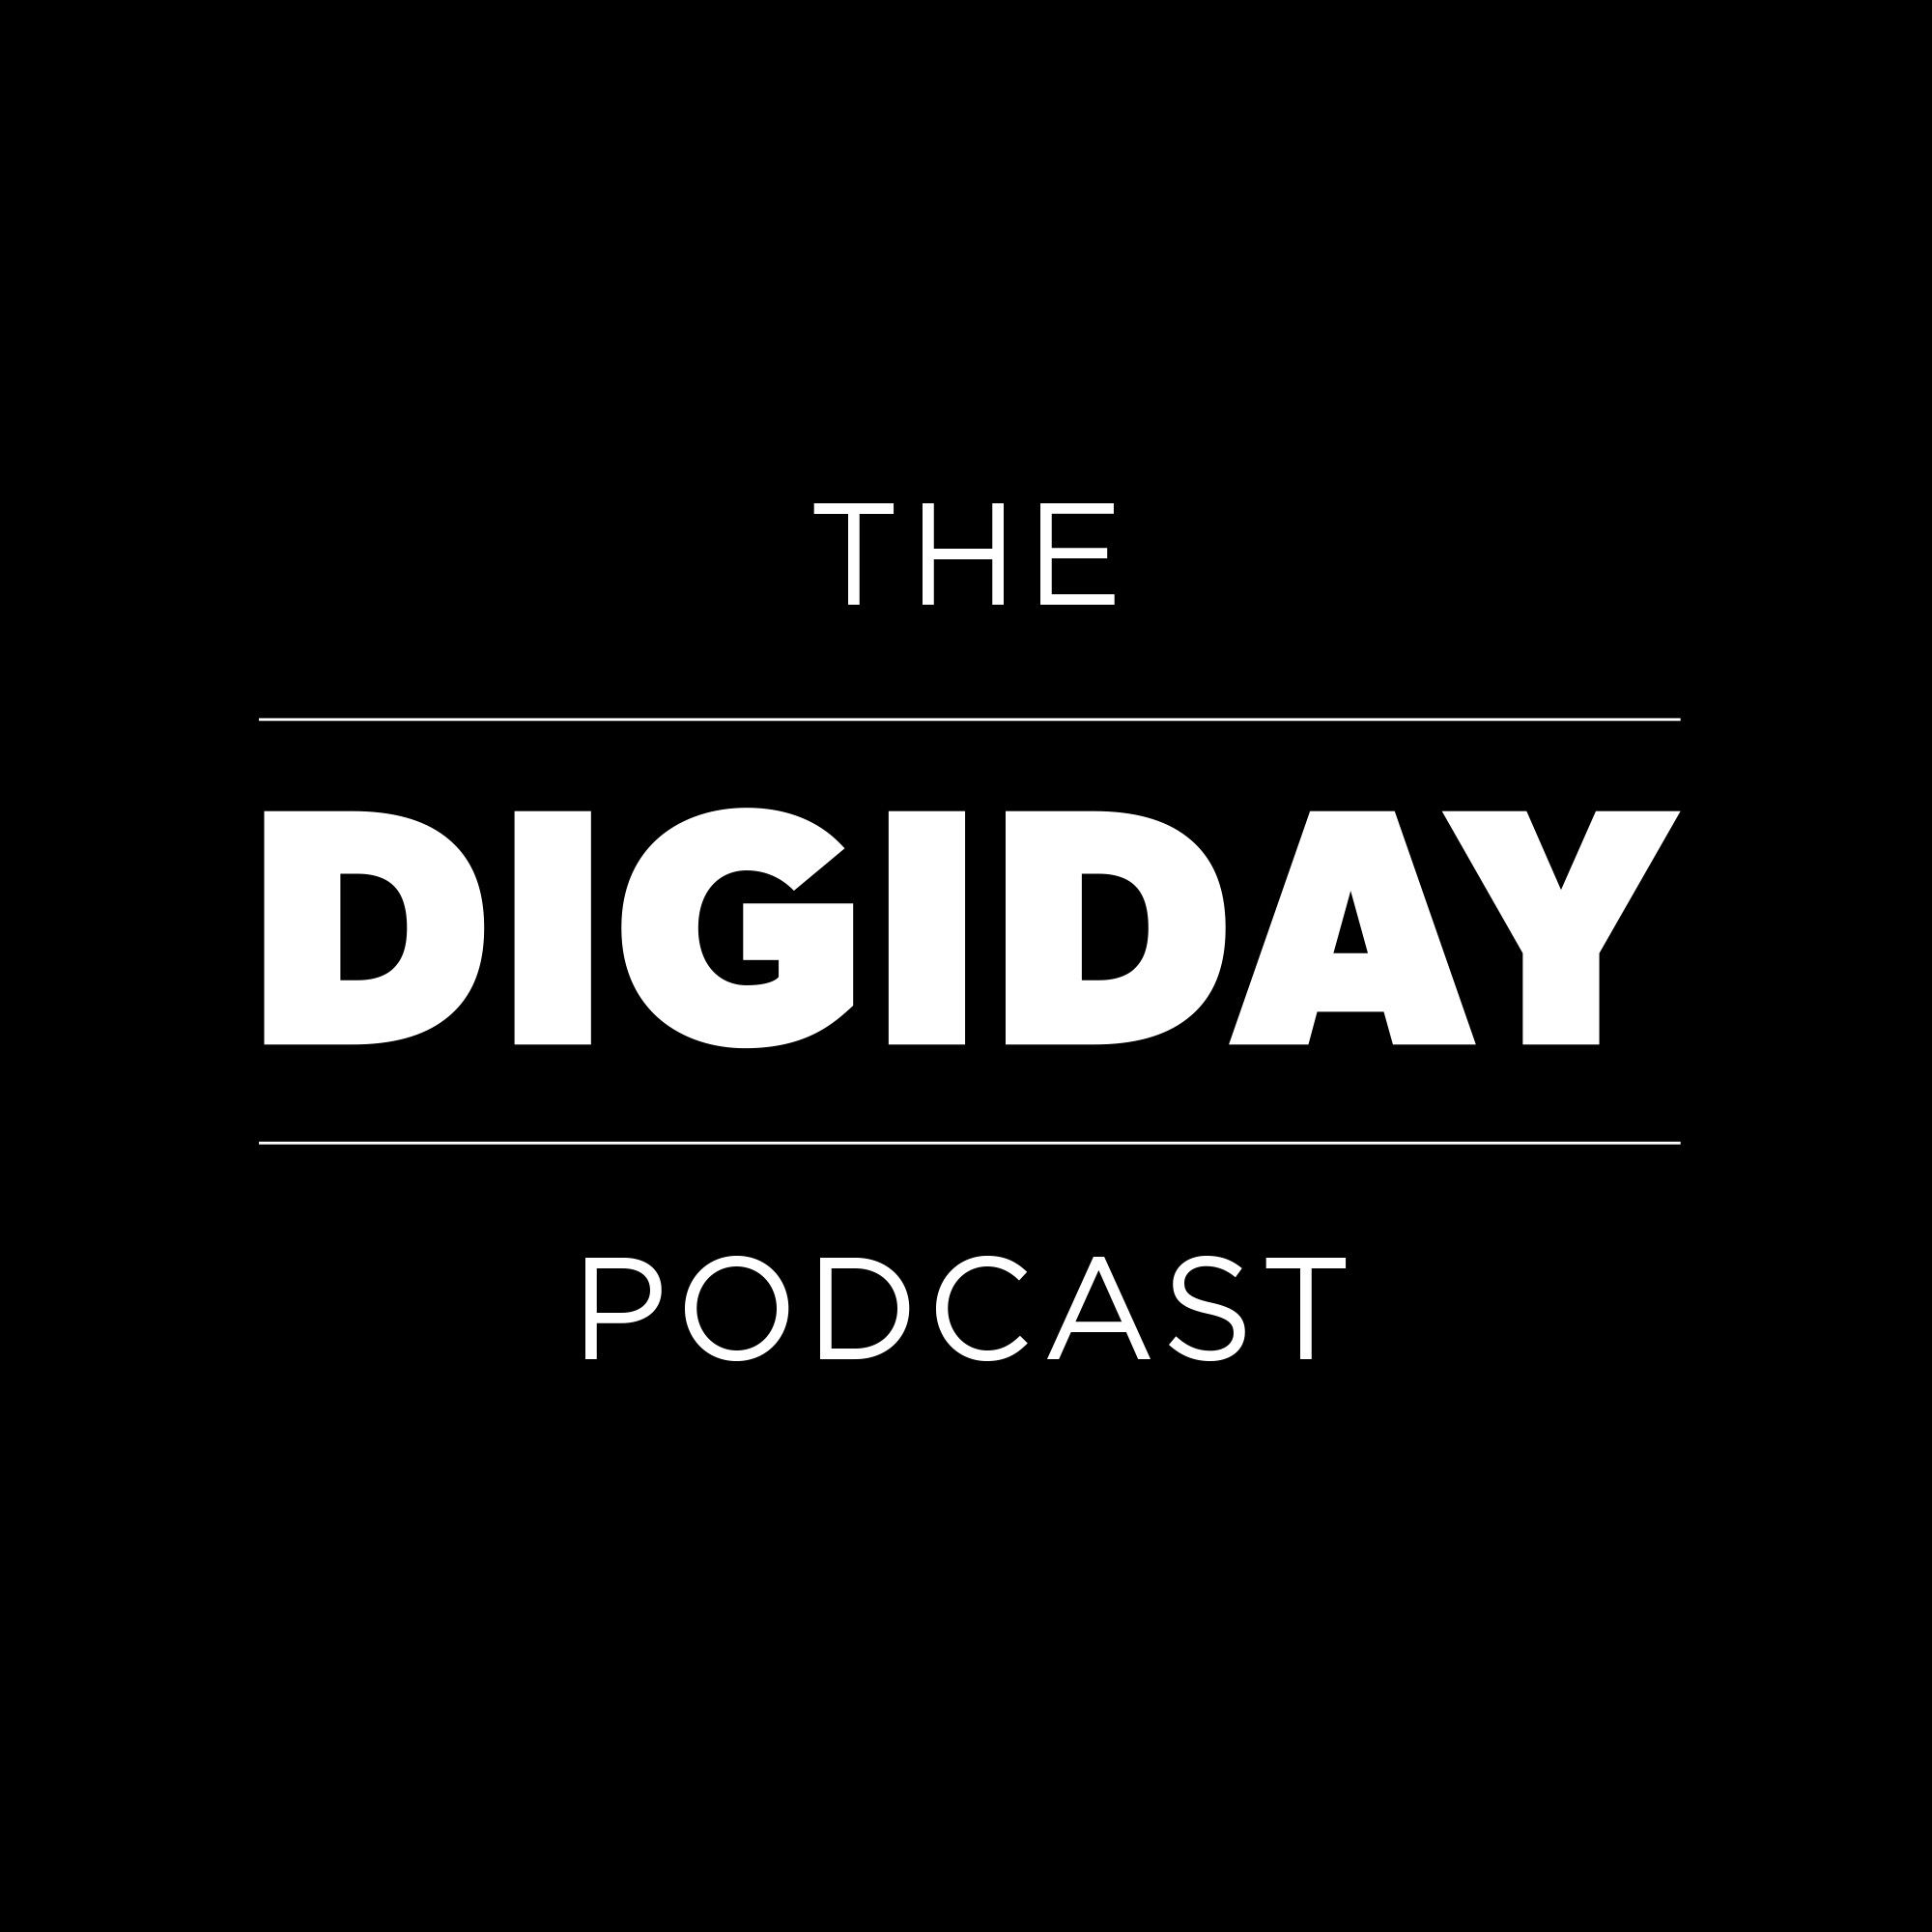 The Digiday Podcast